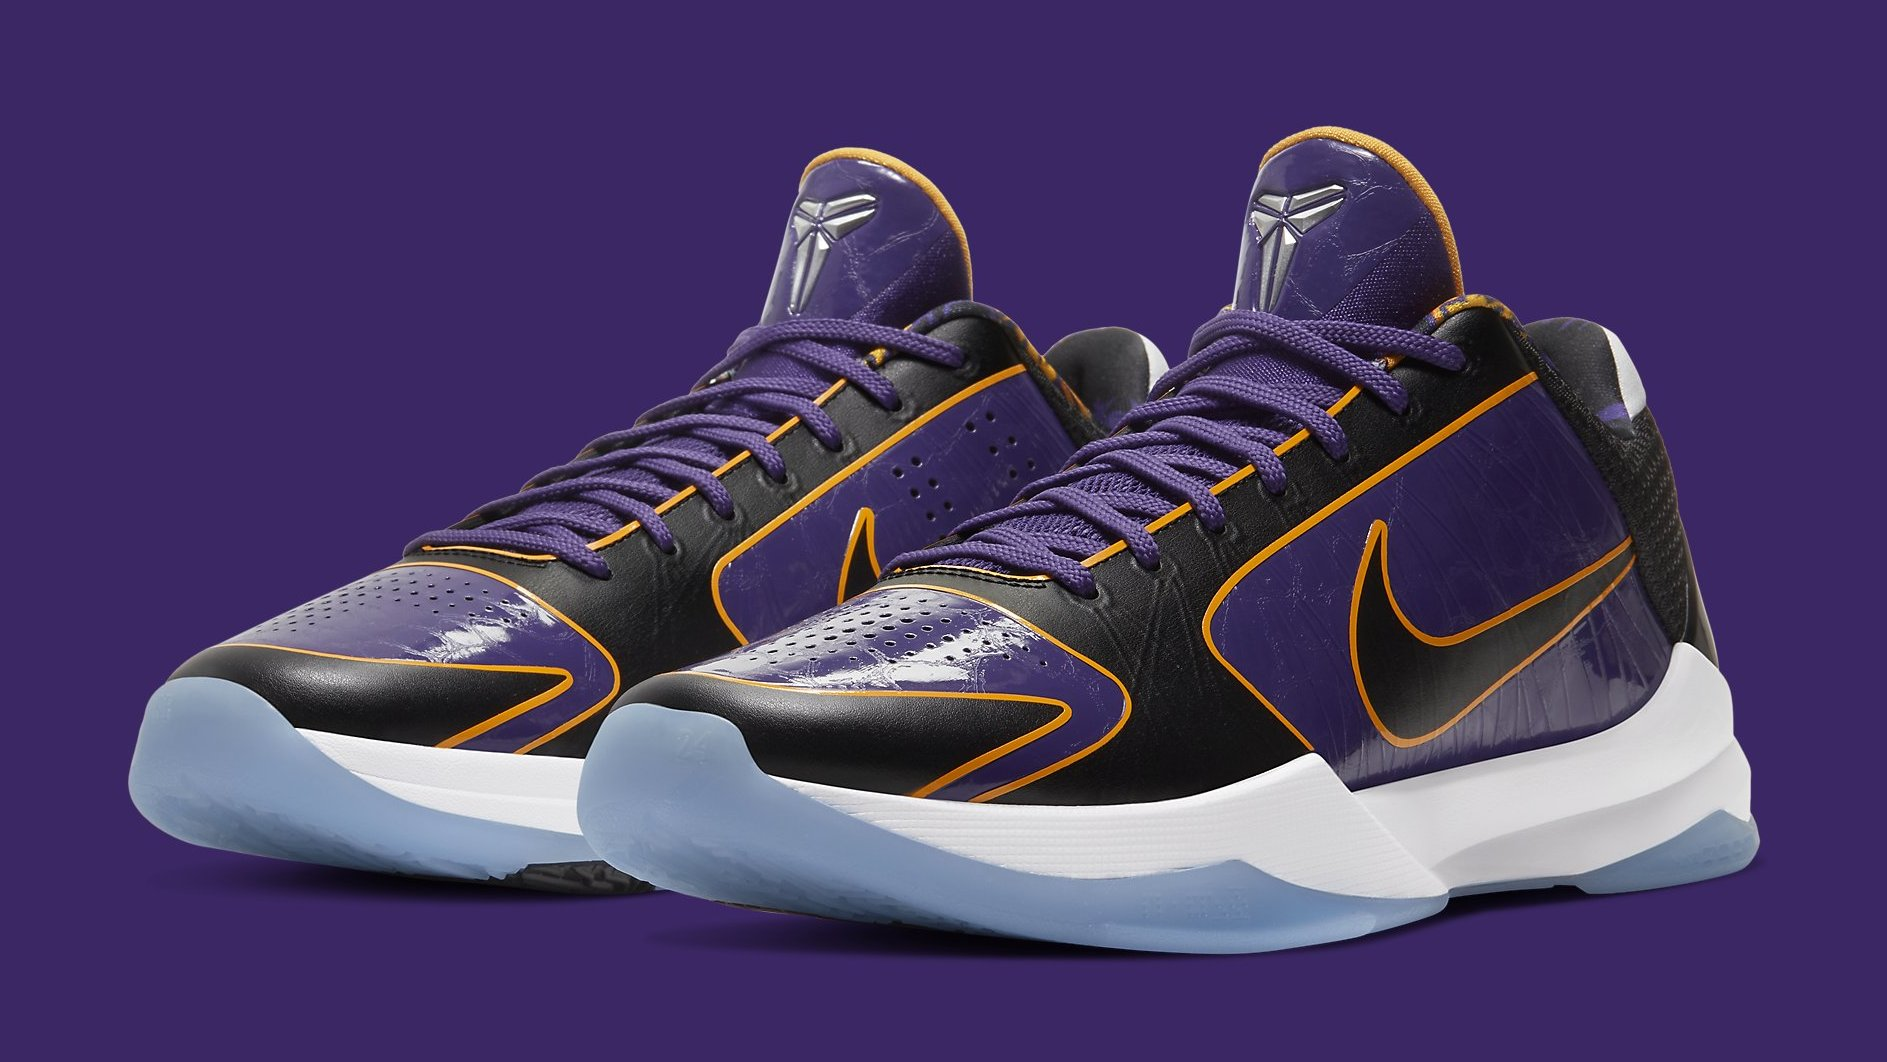 Nike Kobe 5 Protro Lakers Release Date Cd4991 500 Sole Collector